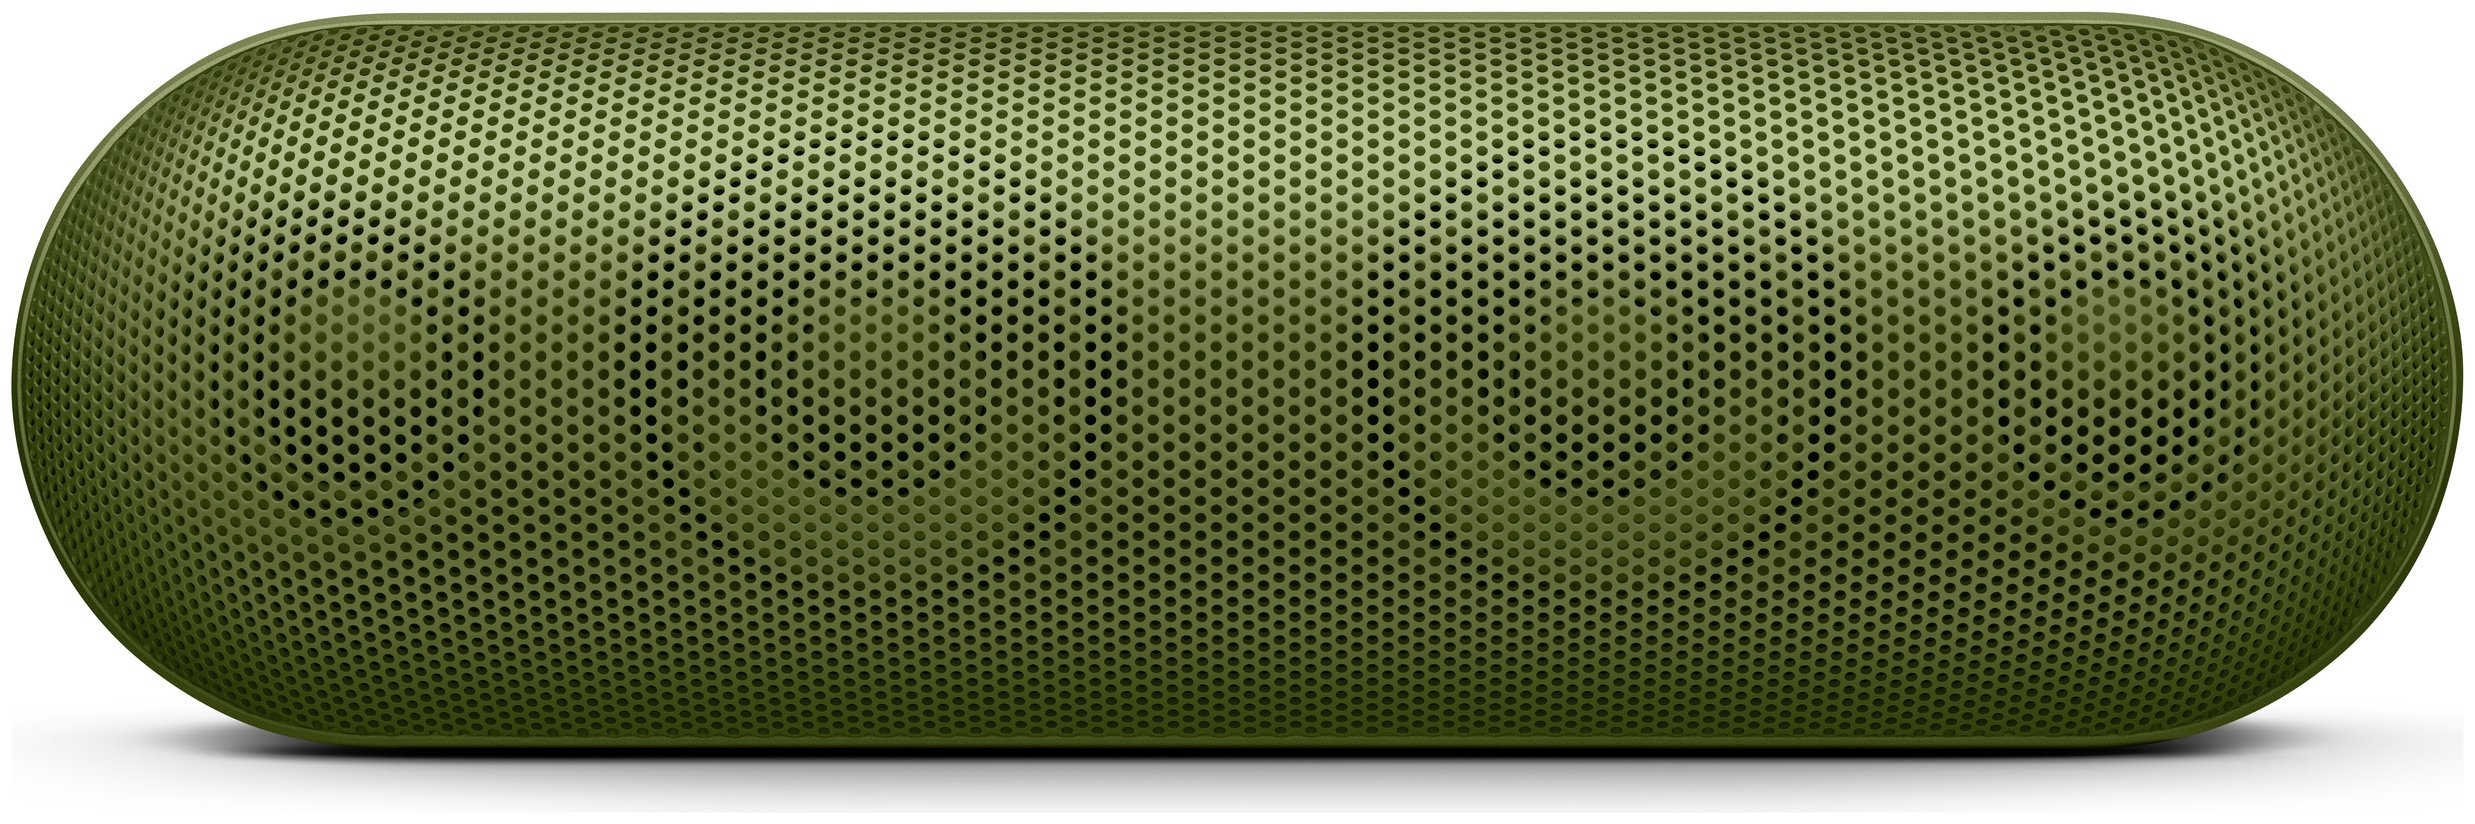 Image of Beats Pill + Portable Wireless Speaker - Green